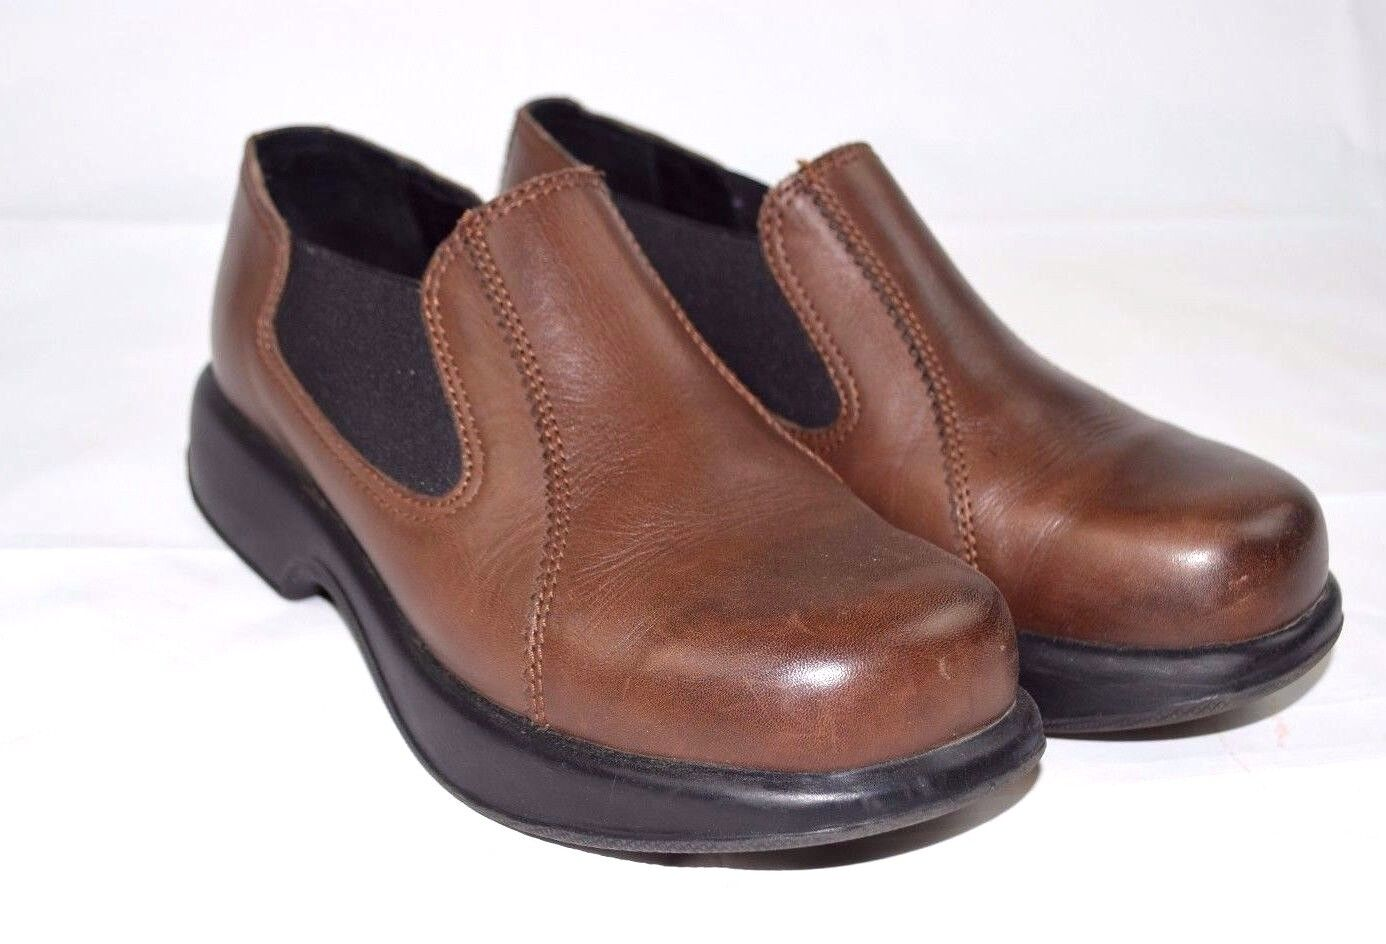 Dansko Brown Leather Elastic Slip On Clog shoes shoes Size 40 (US 9.5-10)